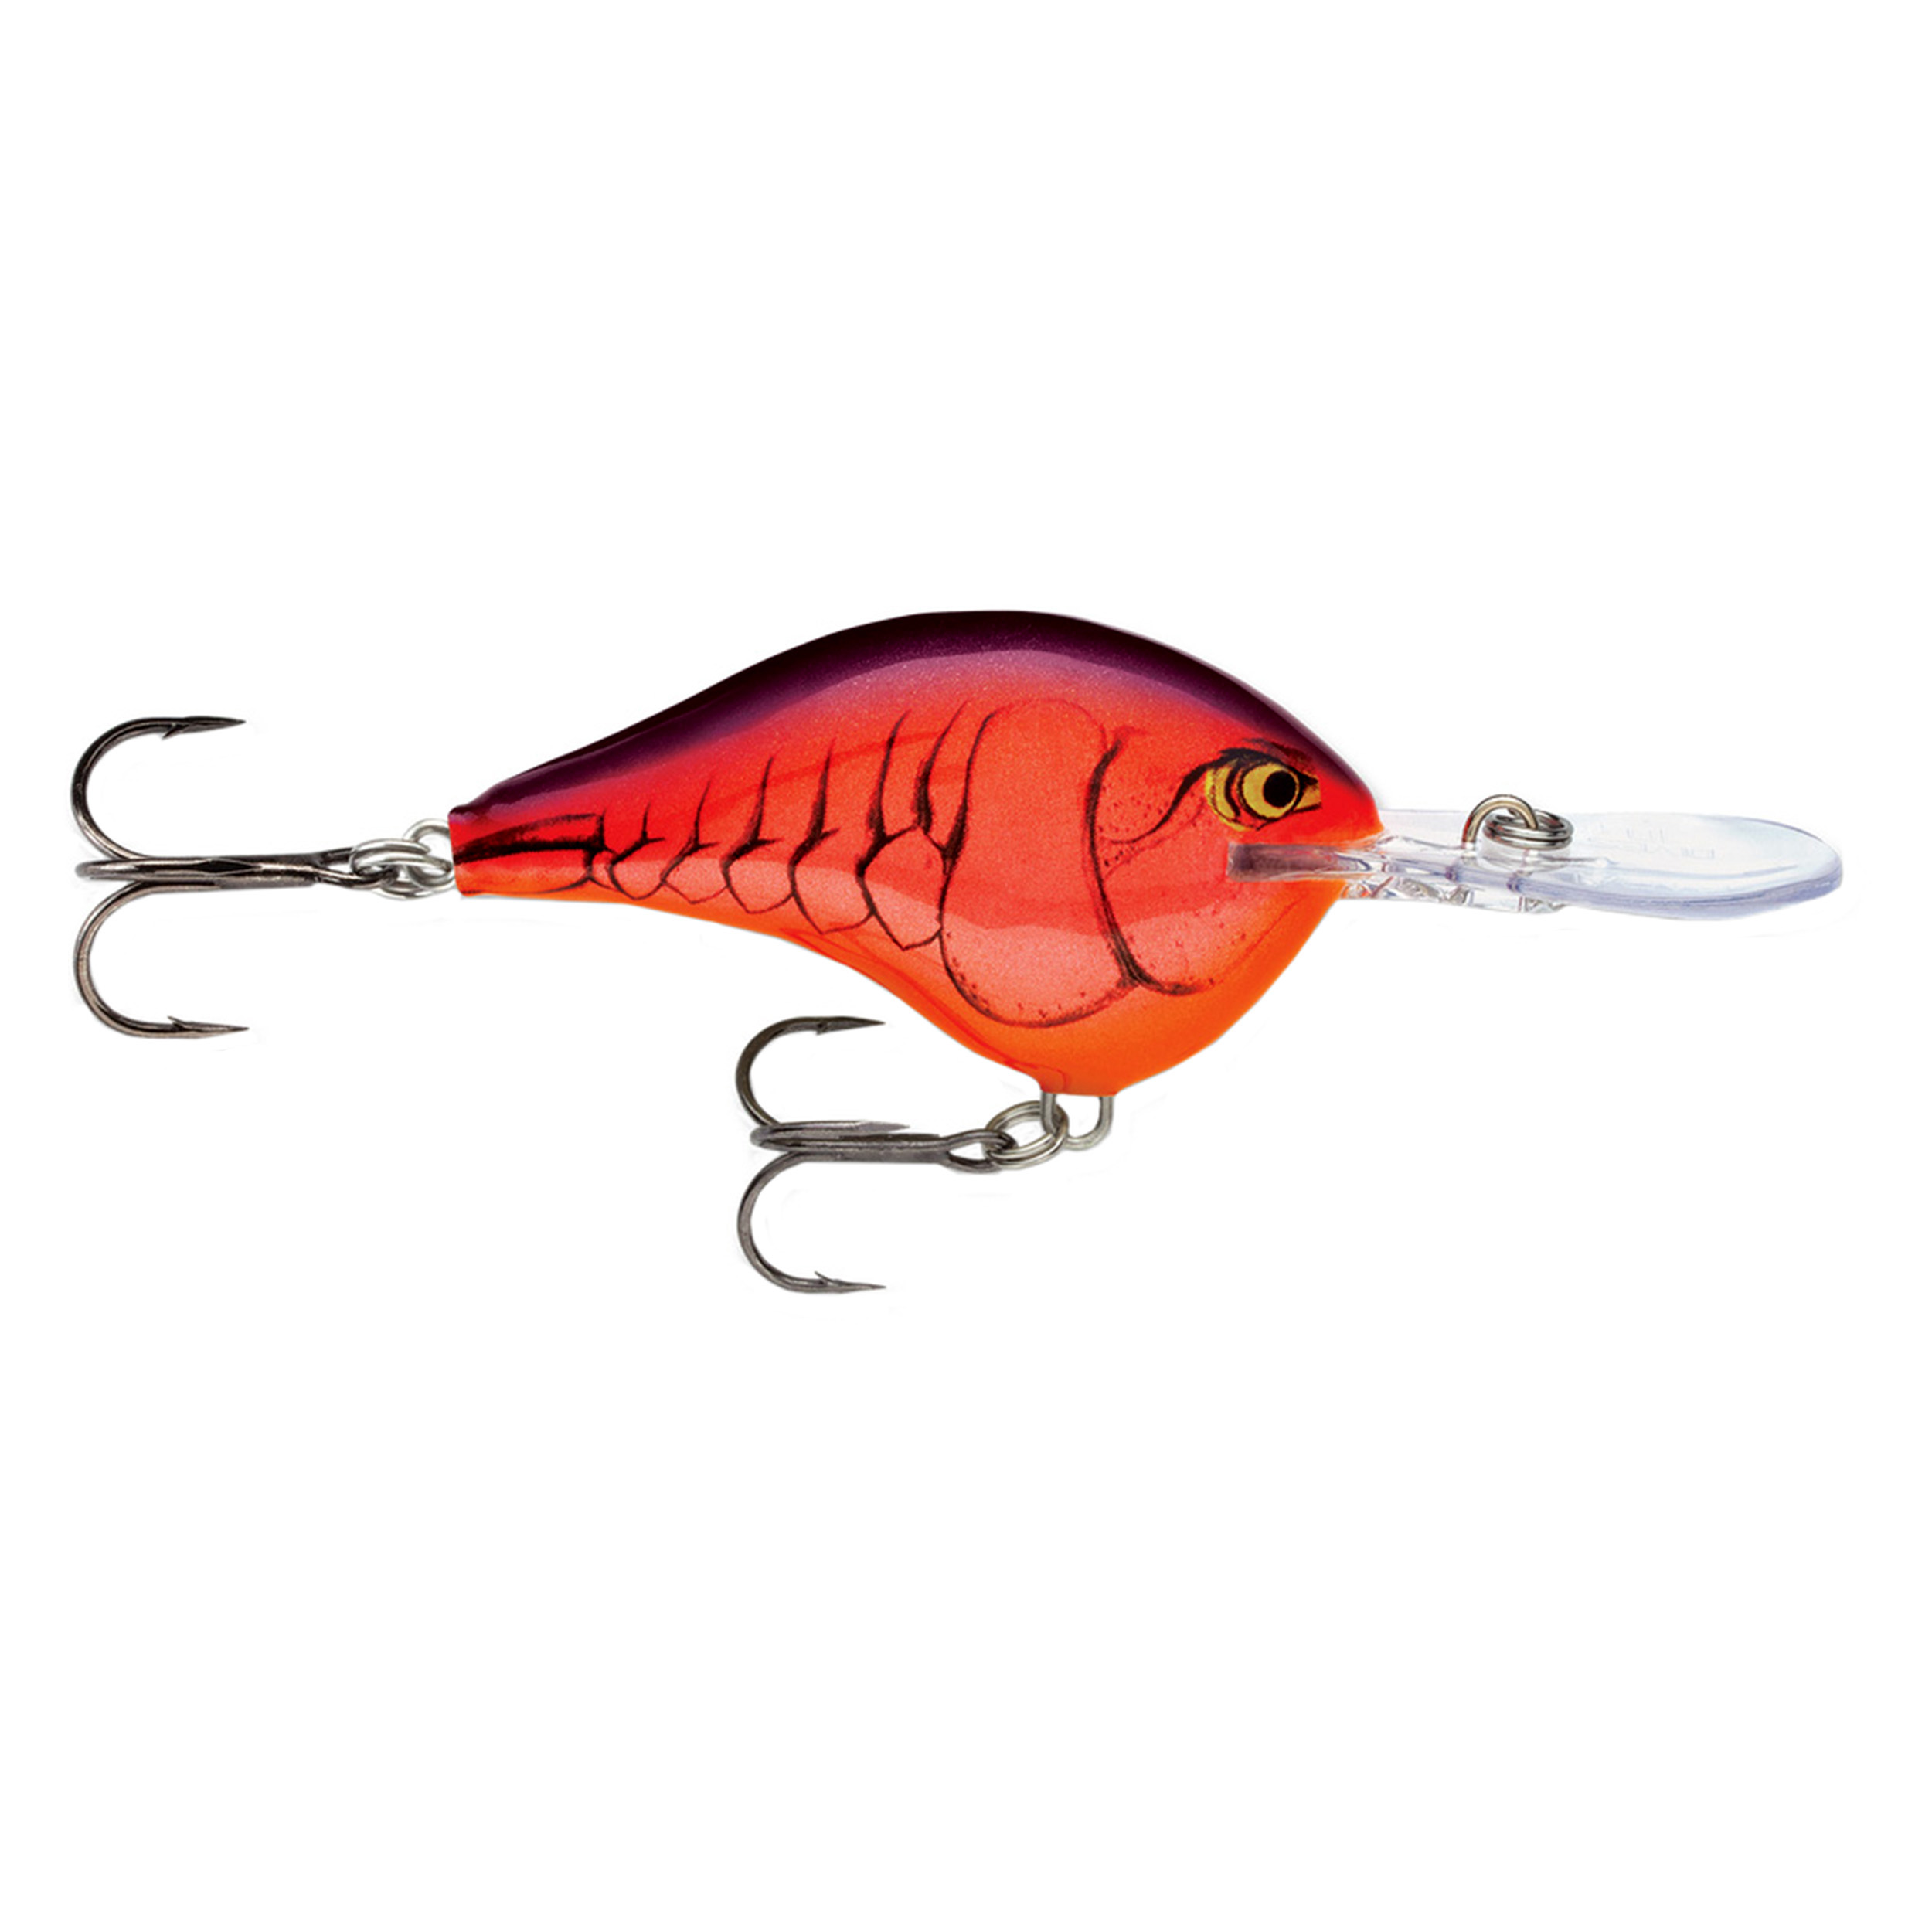 "Rapala Dives-To Series Custom Ink Lure Size 16, 2 3 4"" Length, 16' Depth, 2 Number 3 Treble Hooks, Demon, Per 1 by Rapala"